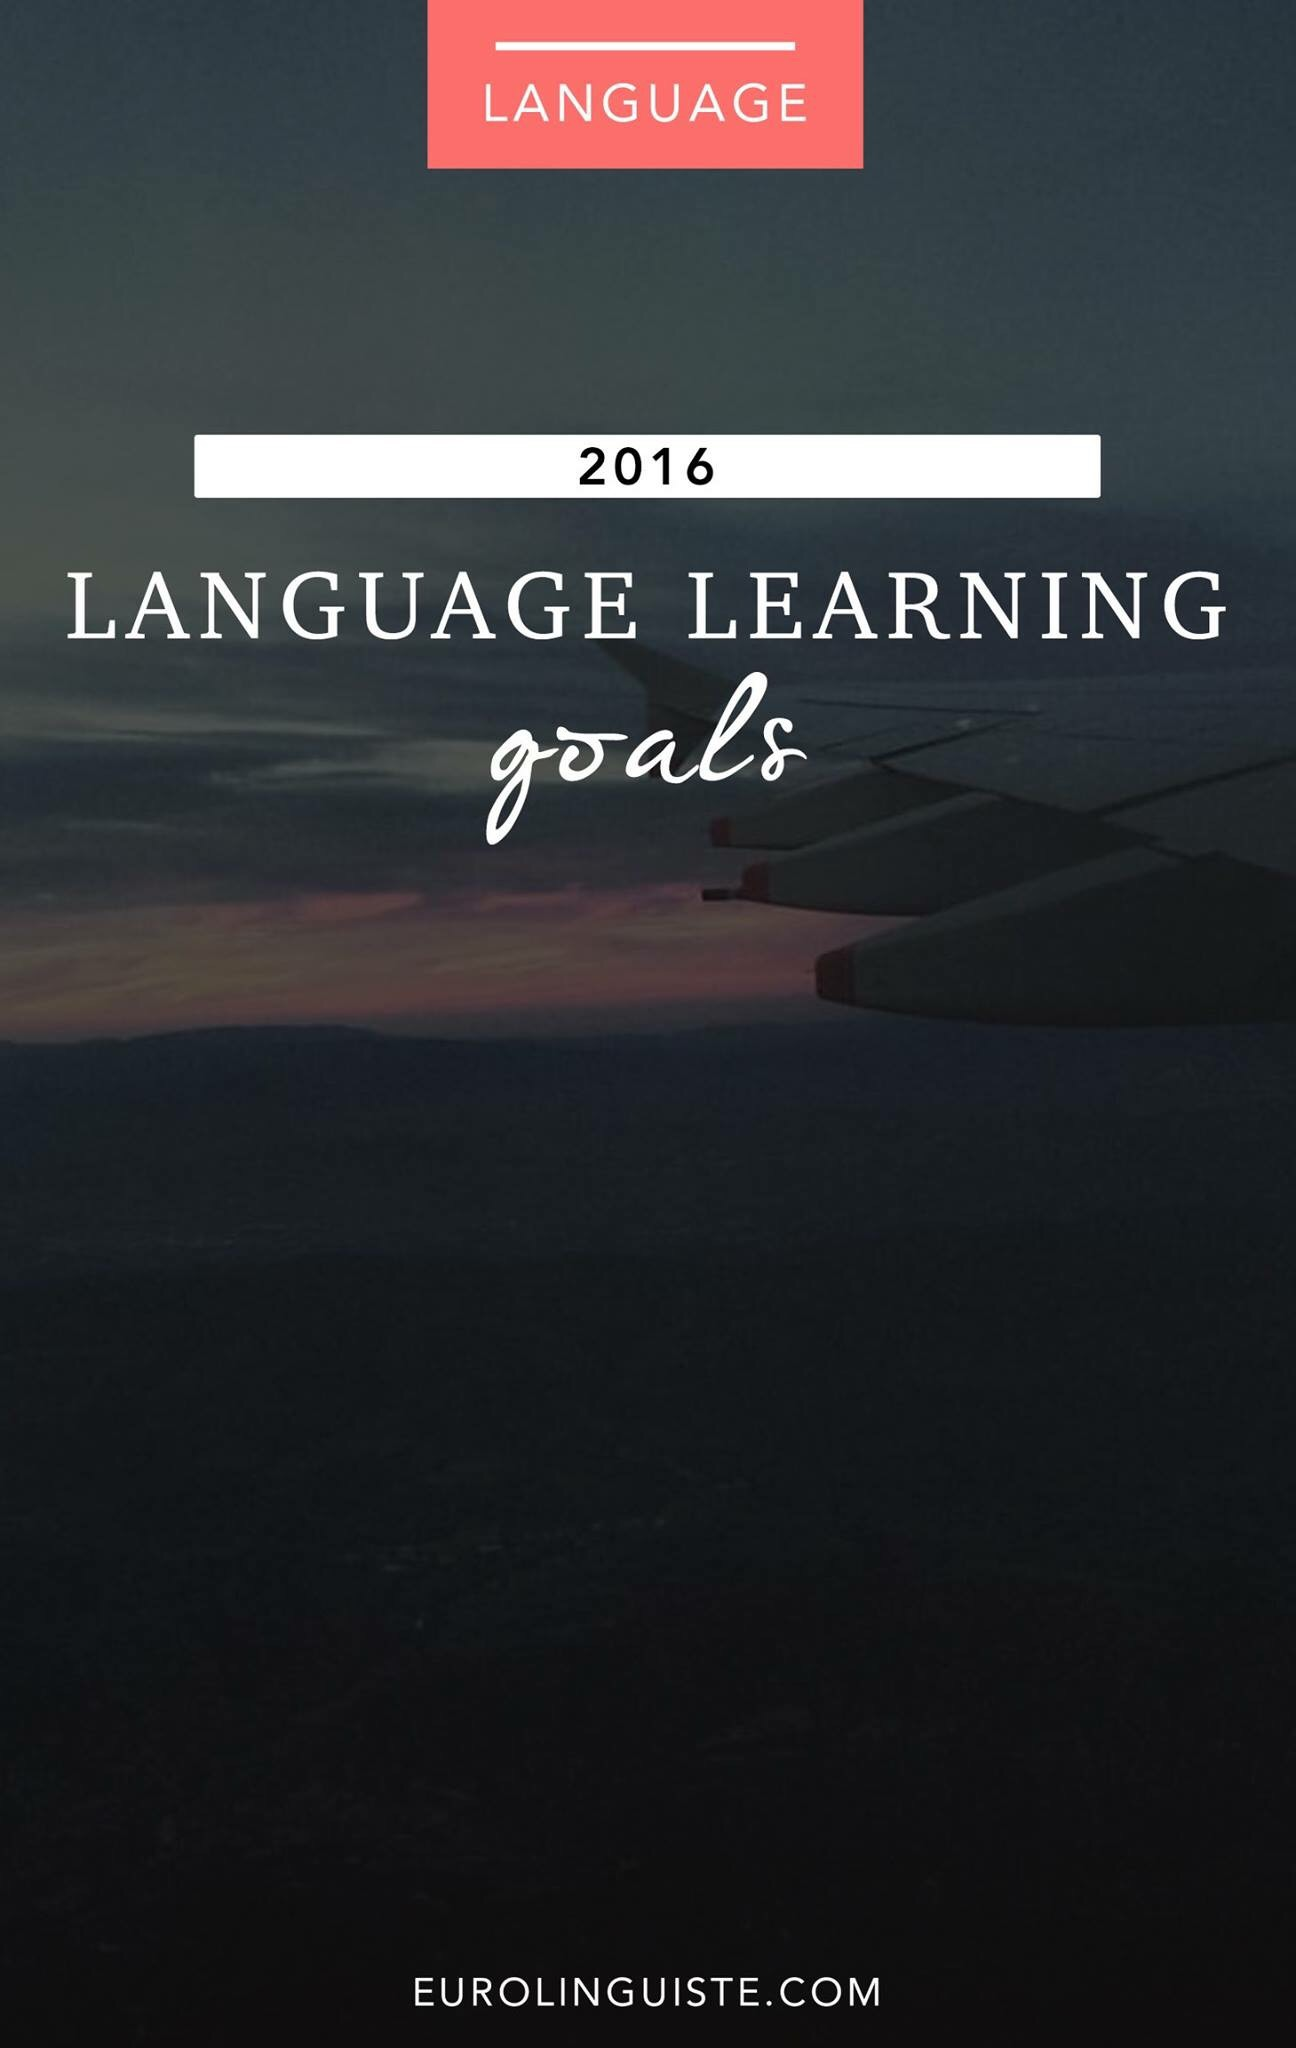 Language Learning Goals & Plans for 2016 | Eurolinguiste